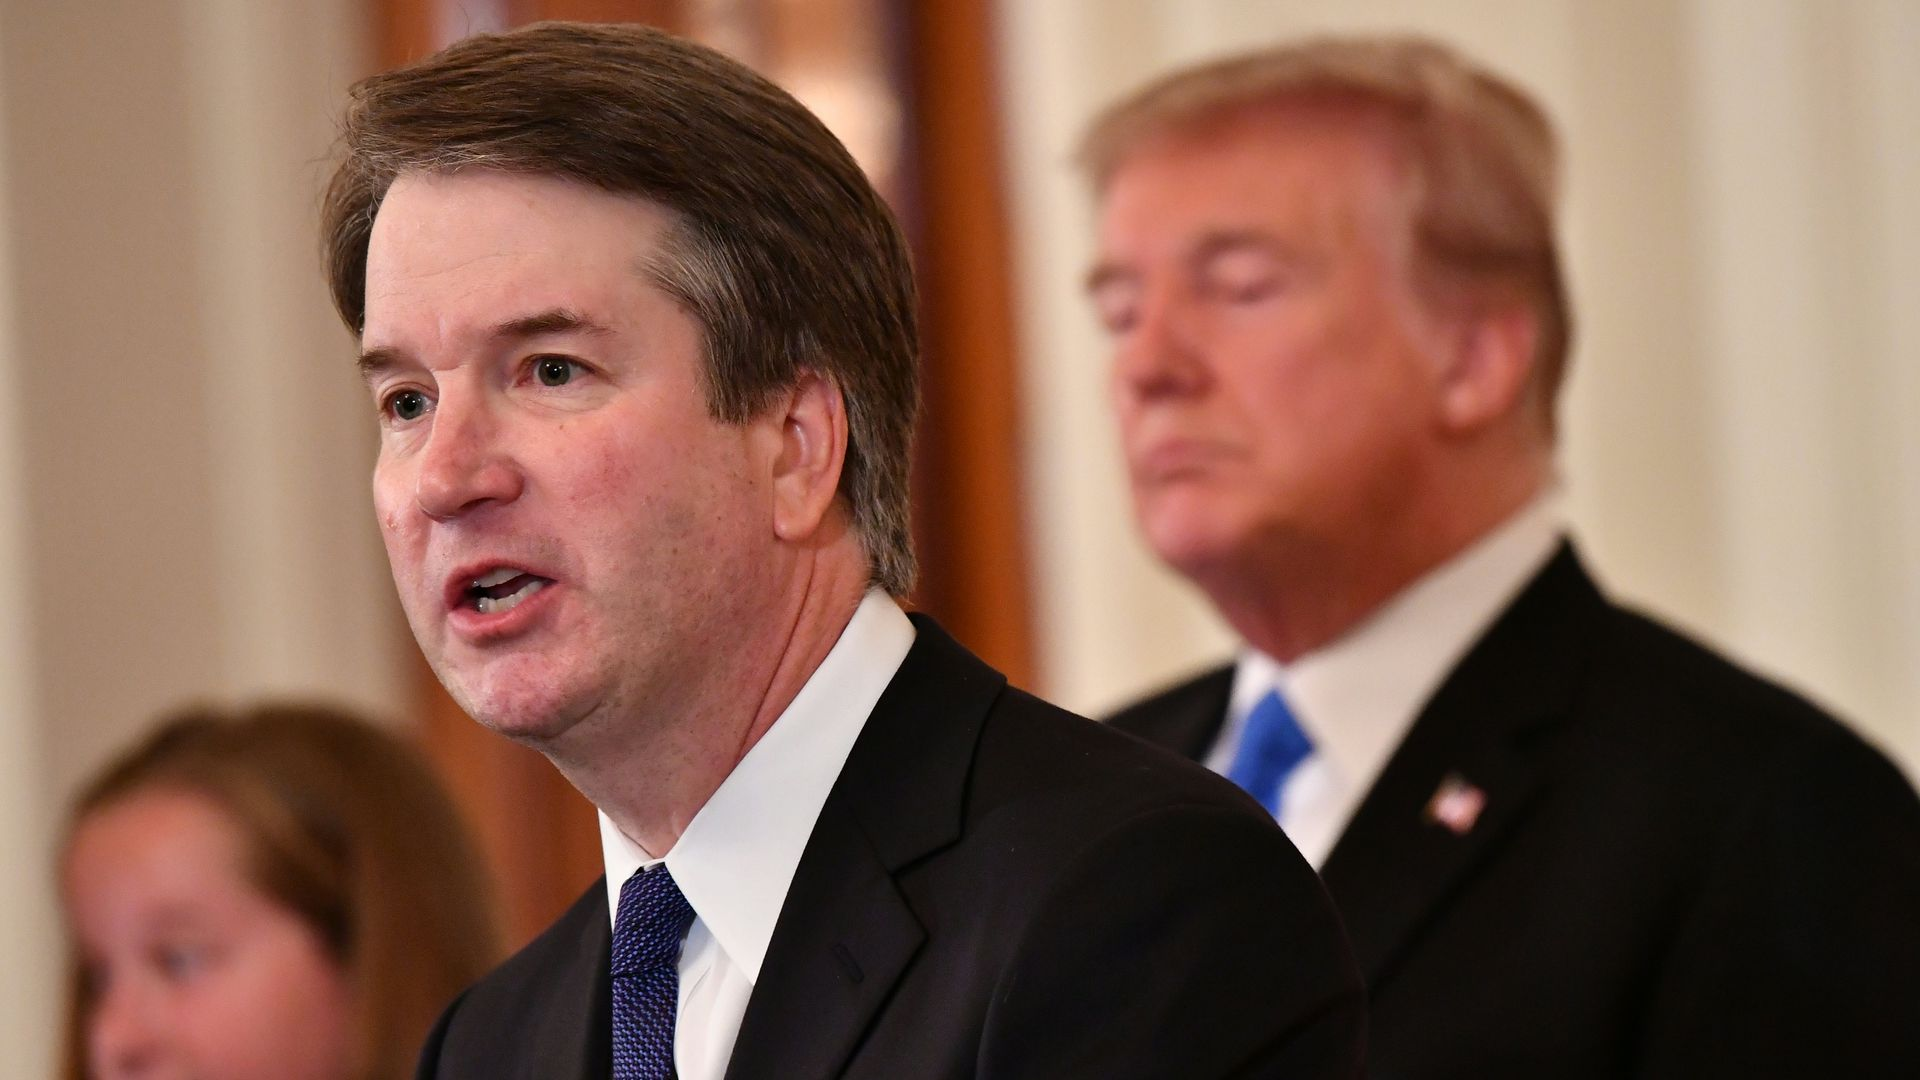 Judge Brett Kavanaugh and President Trump